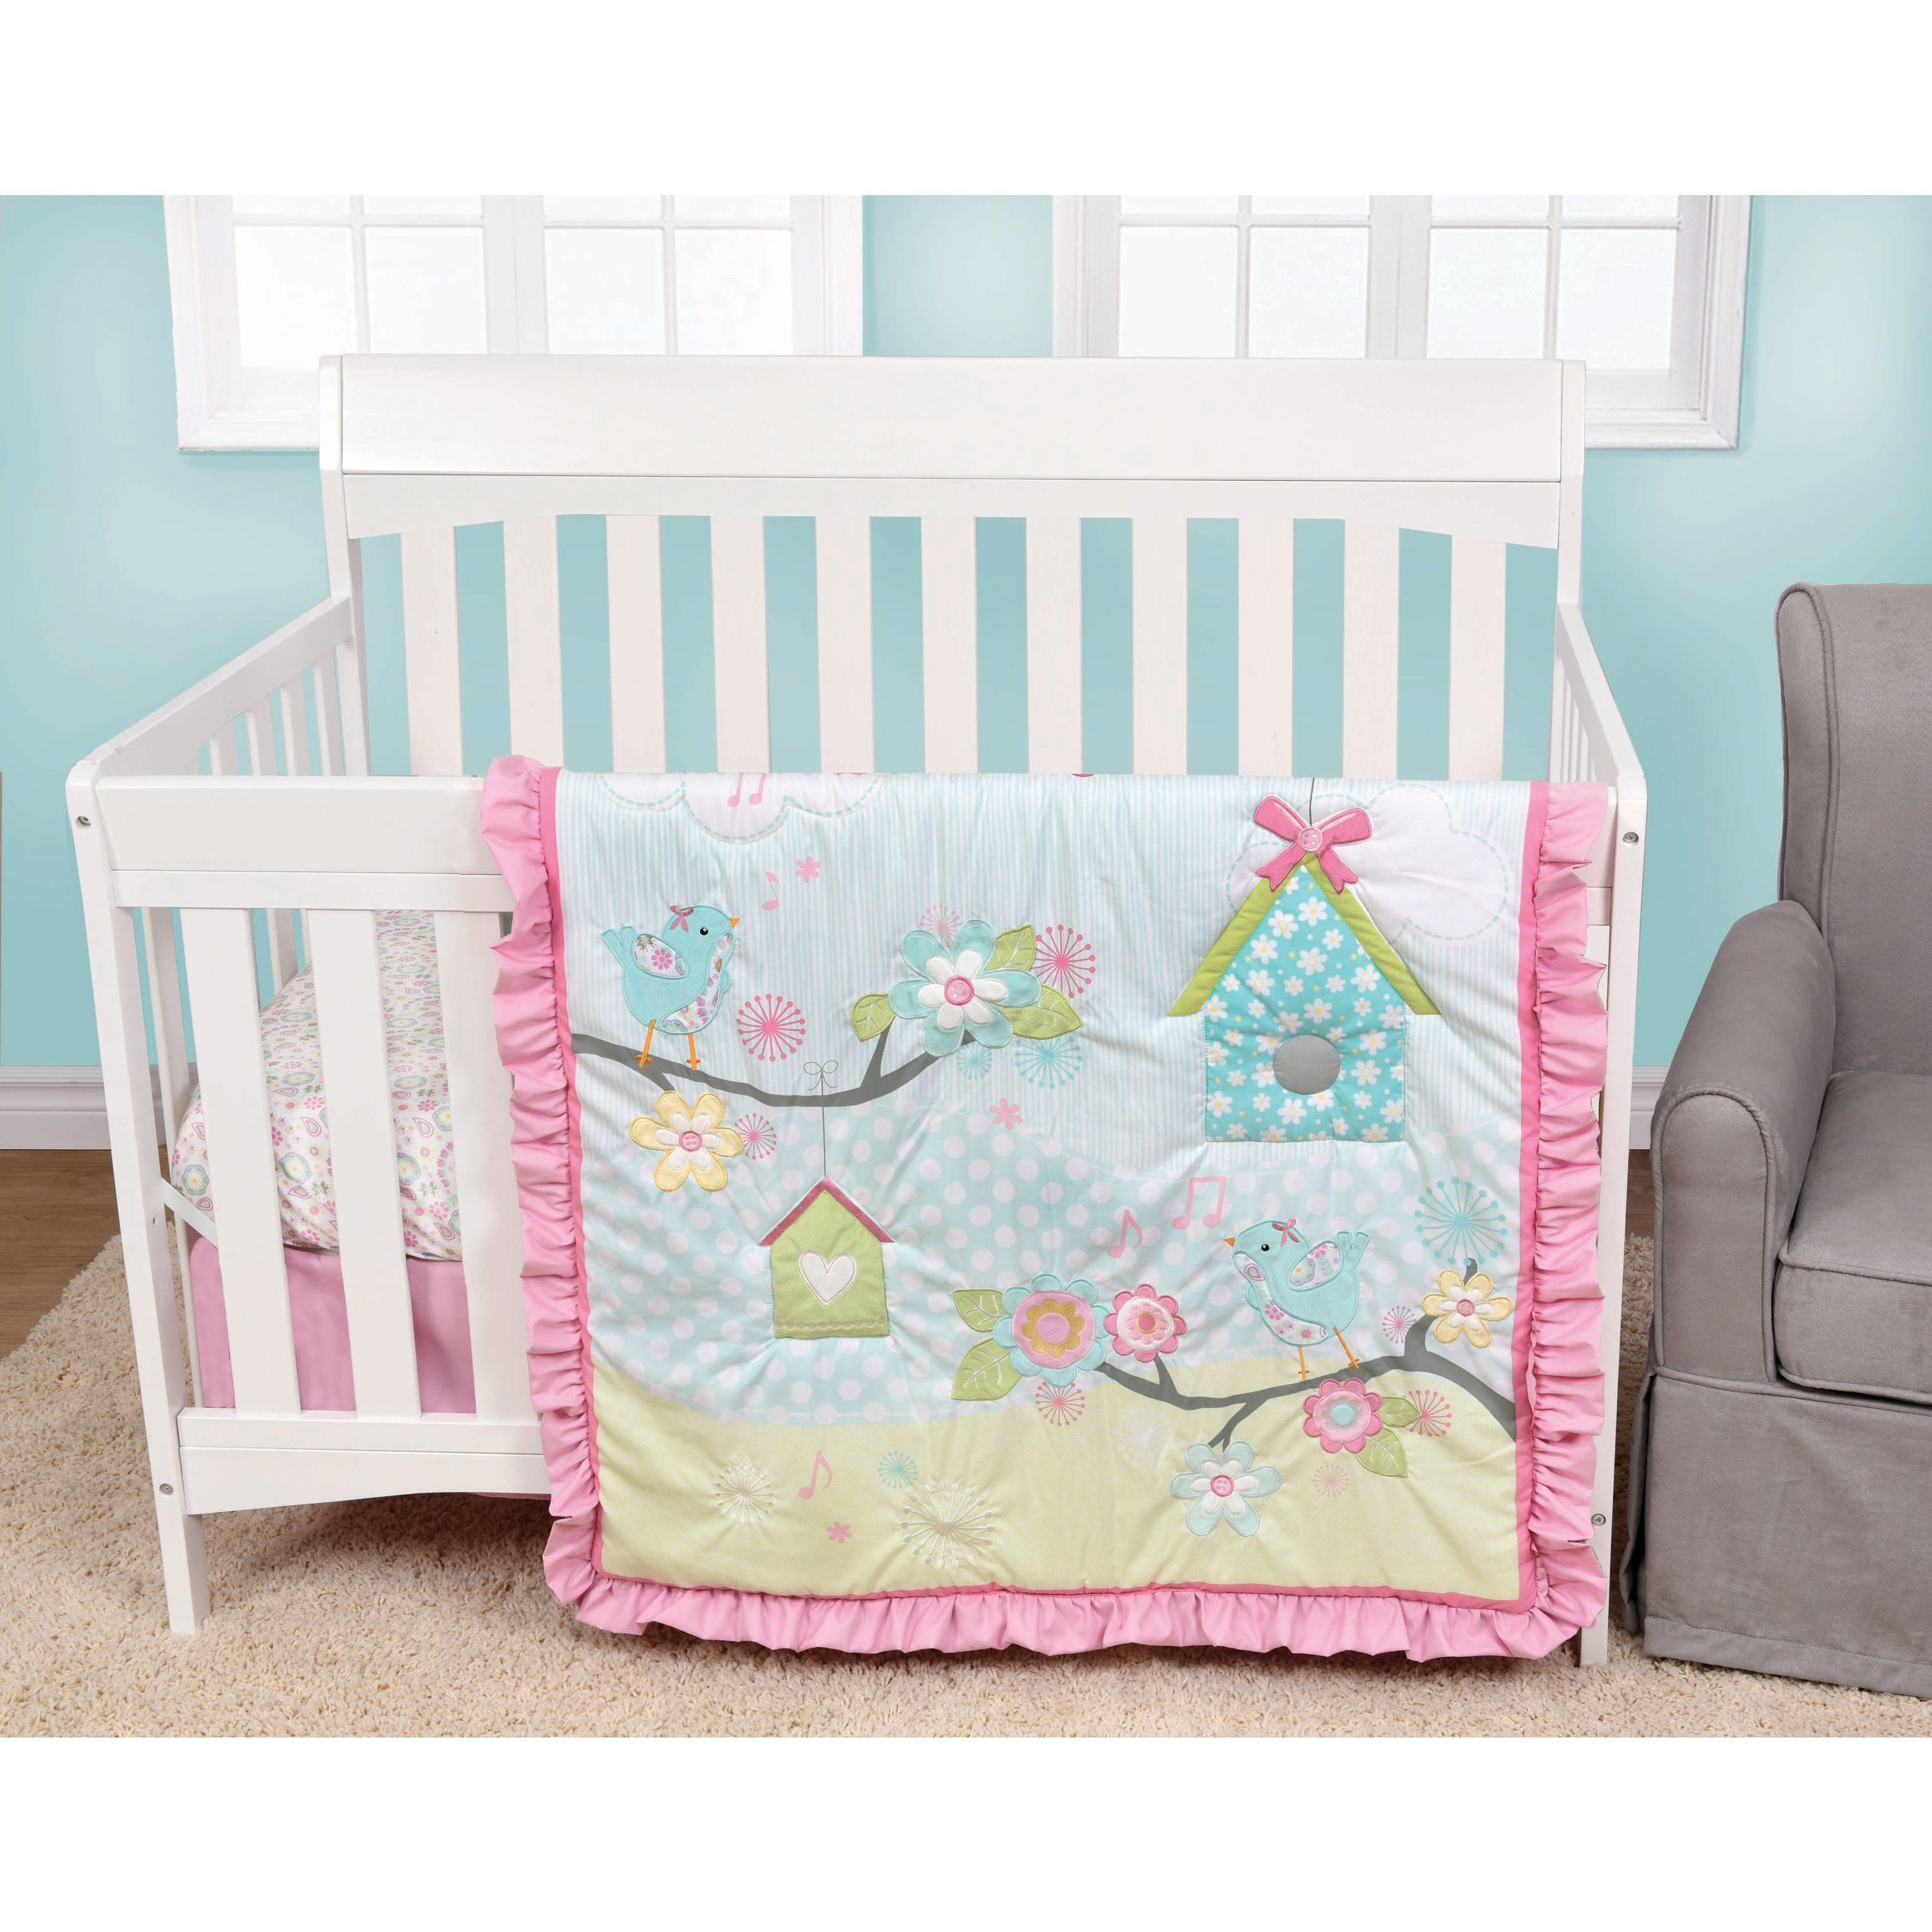 Decorate your baby girl's nursery with this four-piece bedding set. Coordinating wall decals are included to match the sheets and bedding, creating a comprehensive look in the room. Details: Set inclu